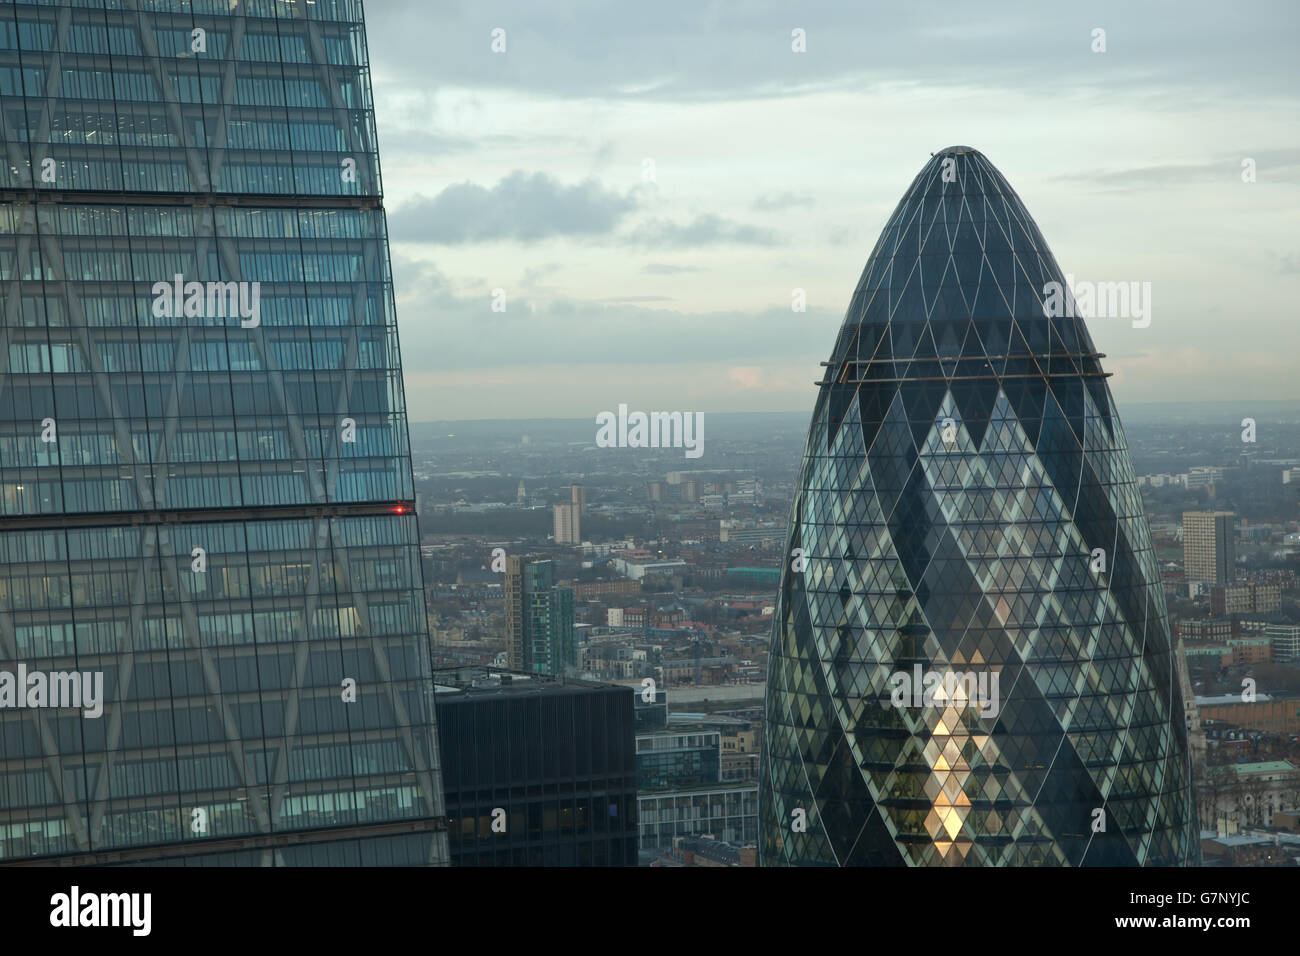 Gherkin and Cheese Grater skyscrapers, London, UK - Stock Image